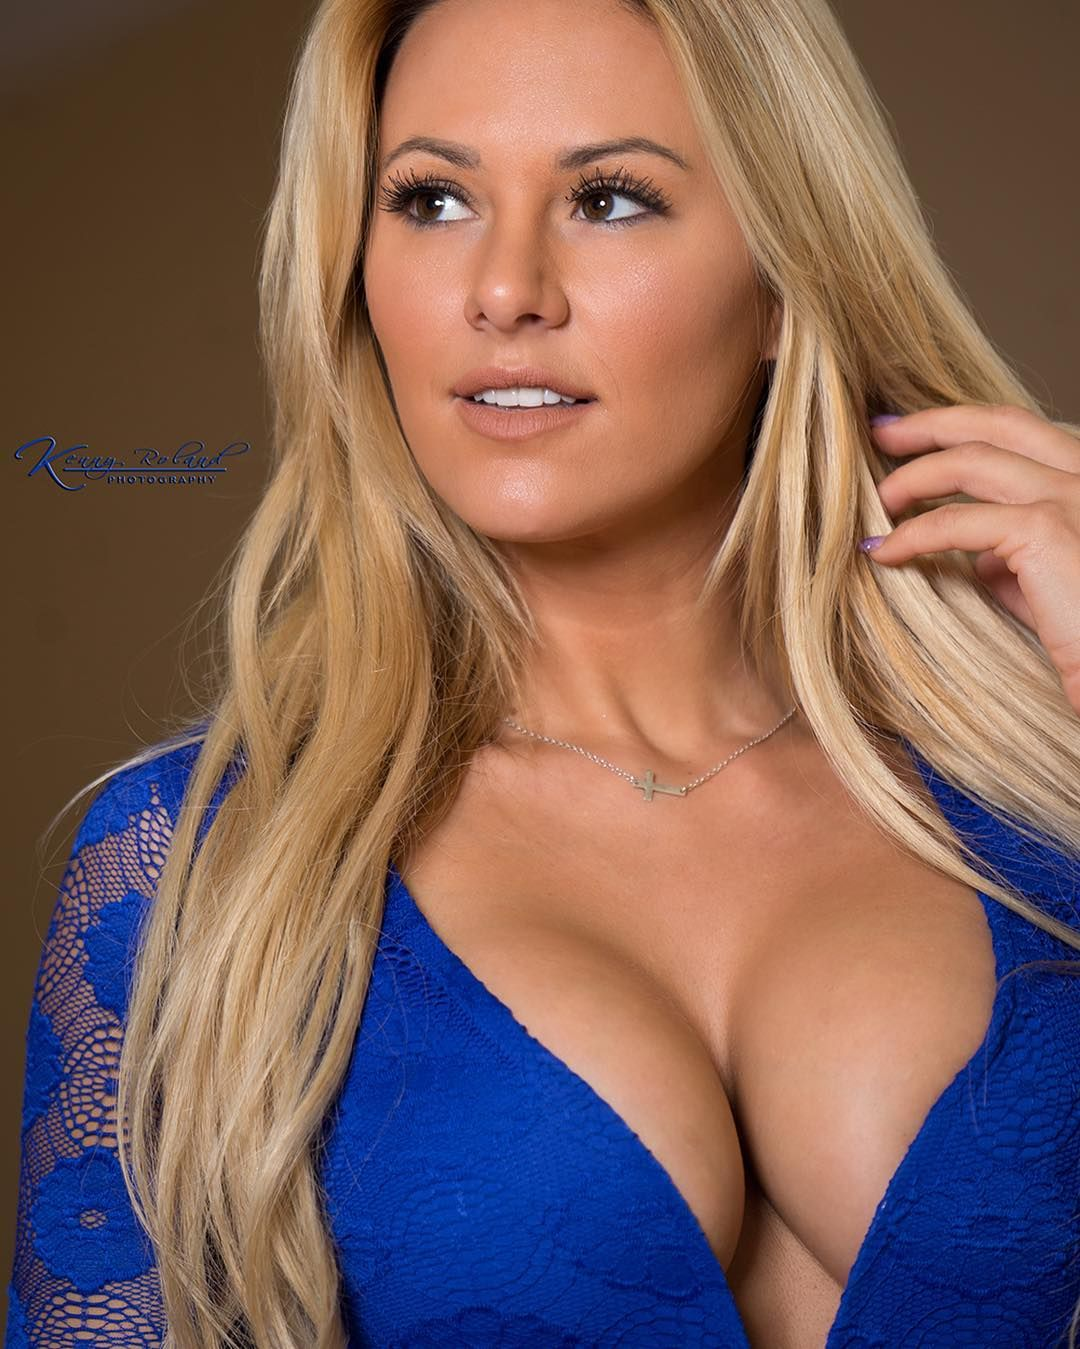 Cleavage Kindly Myers nude photos 2019